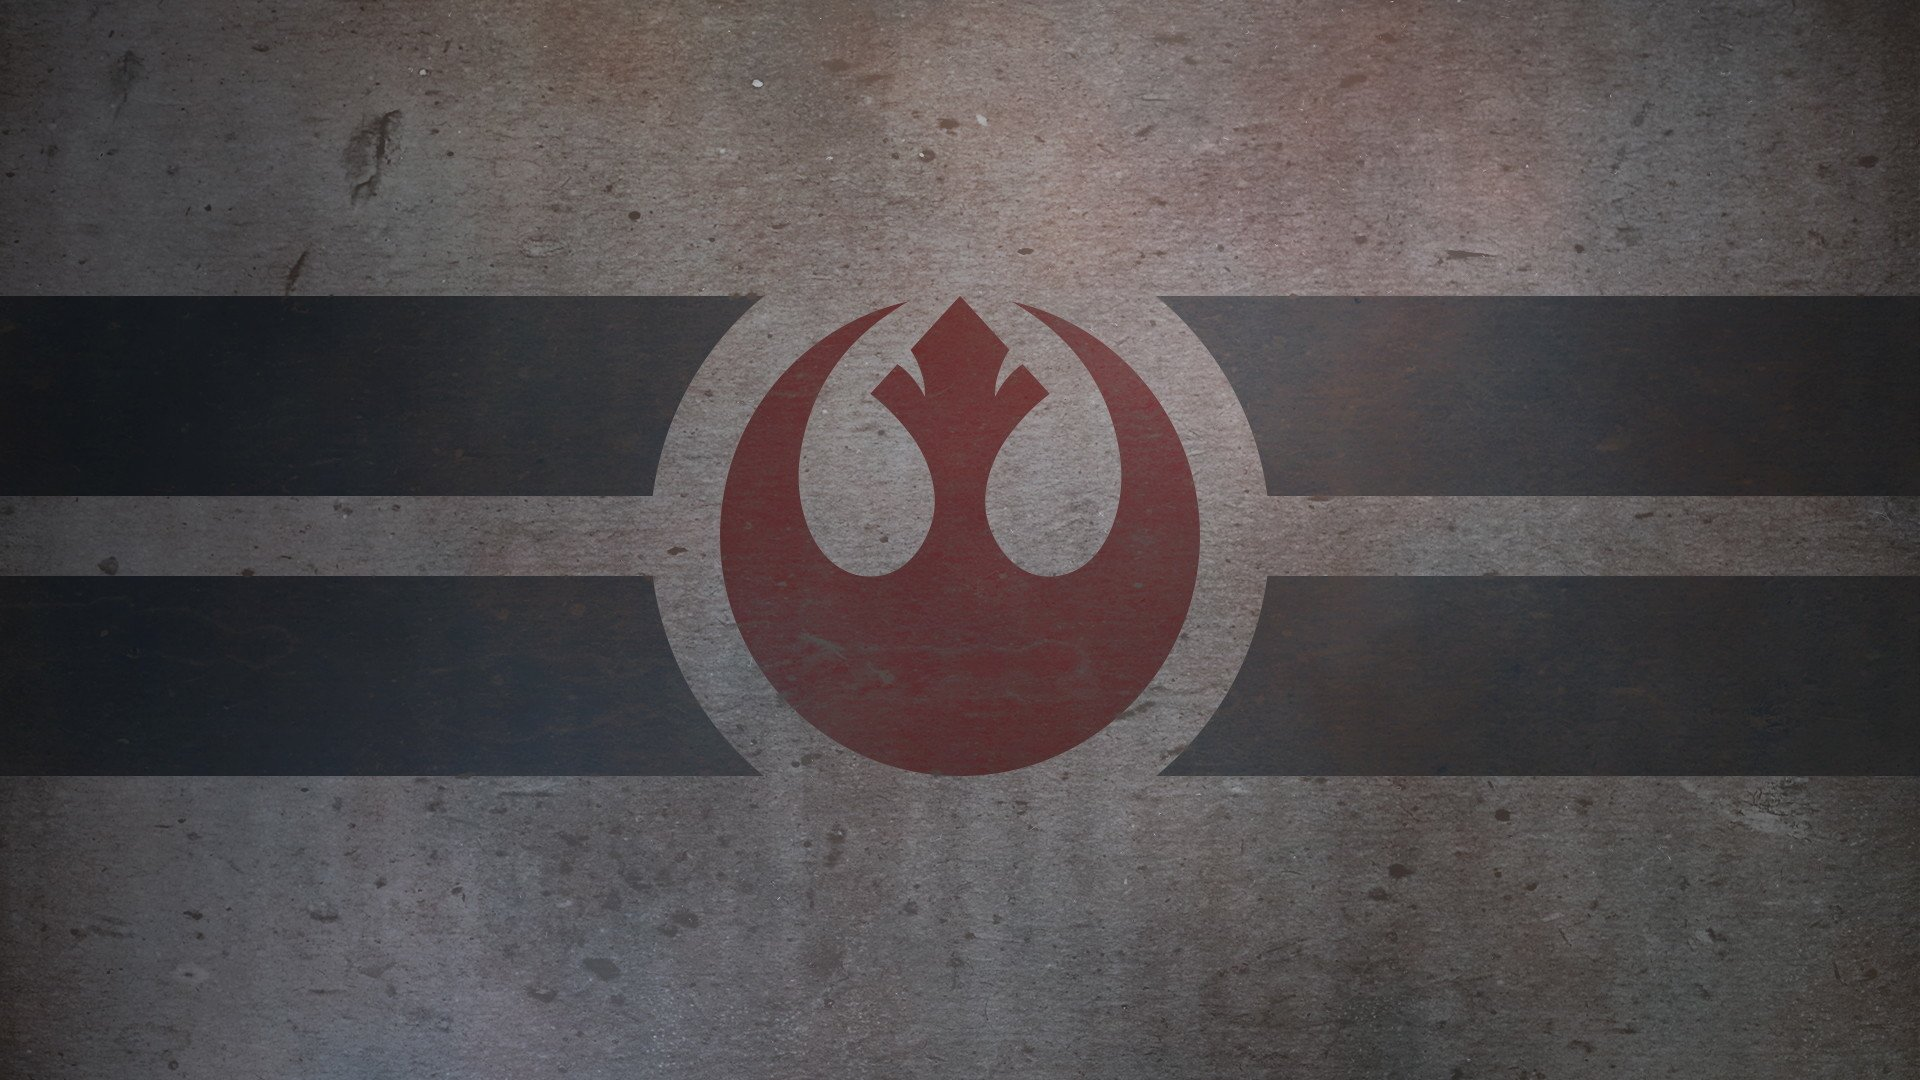 Sci Fi - Star Wars  Rebel Alliance Wallpaper